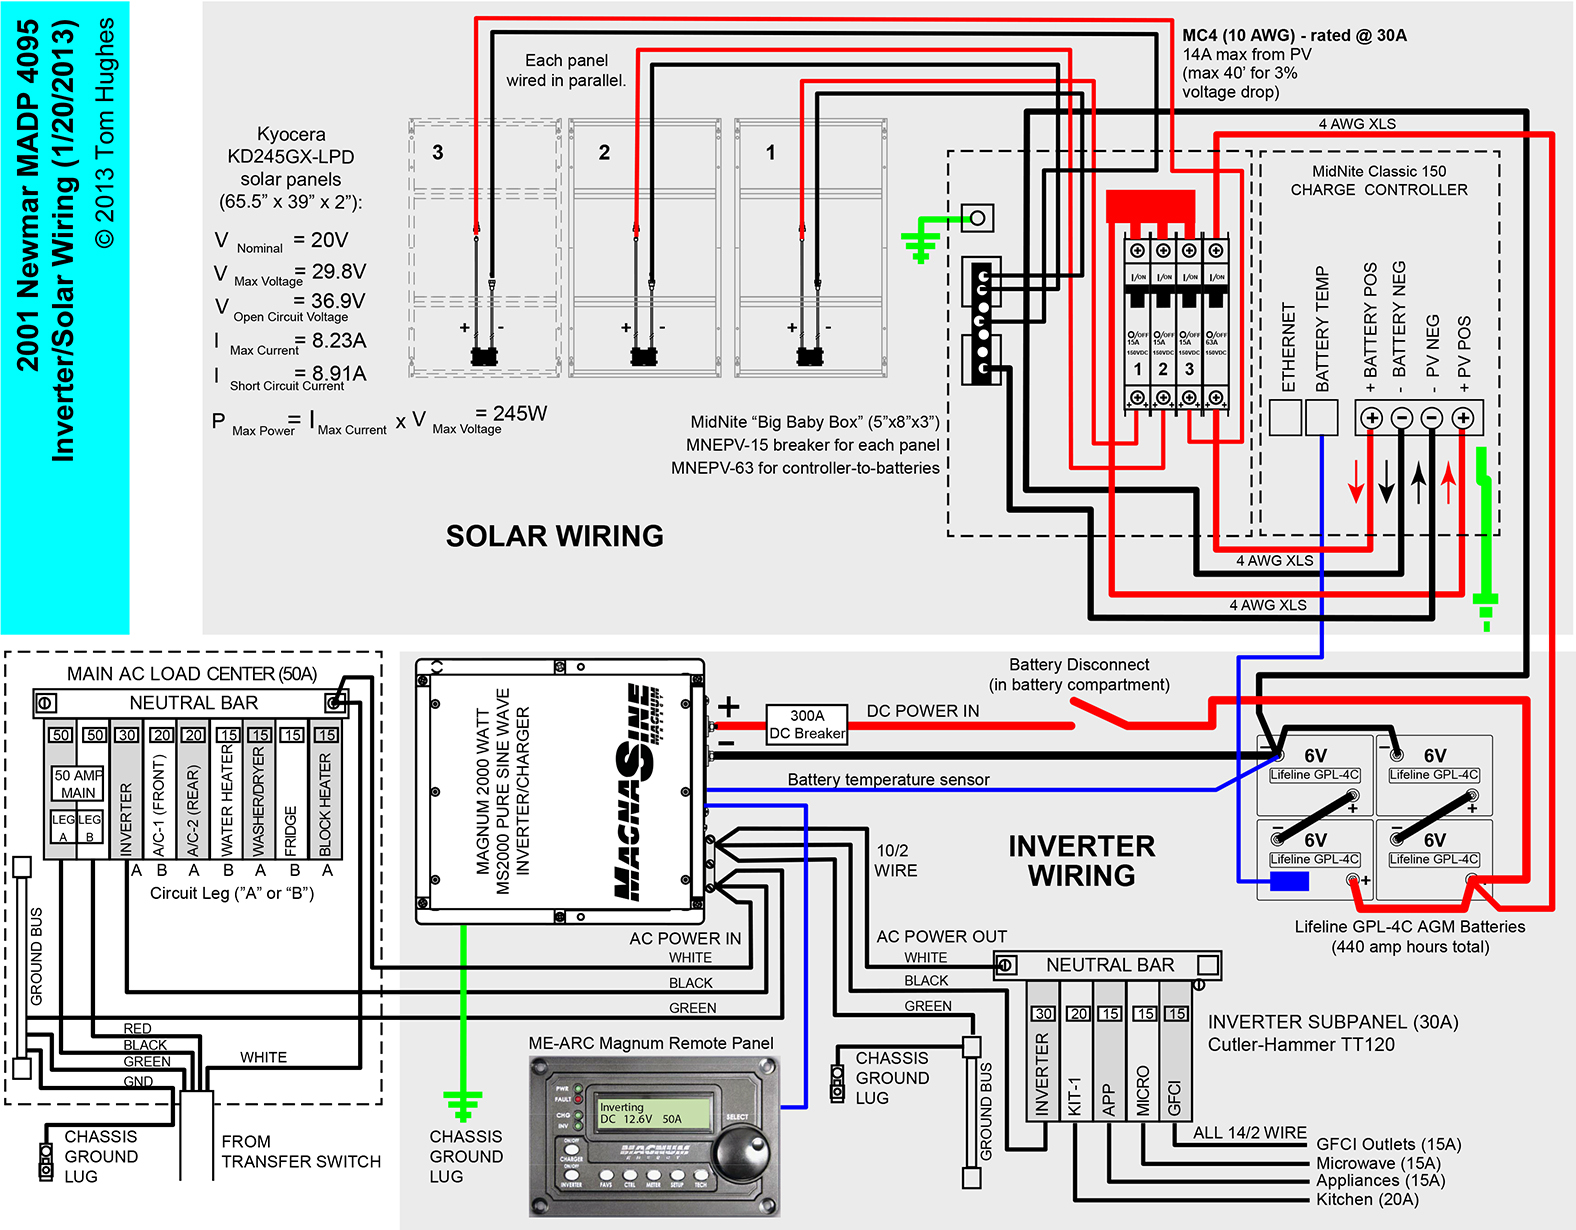 ms2000_newmar_inverter_wiring_01_20_2013 rv inverter diagram rv inverter transfer switch \u2022 wiring diagrams wiring diagram for solar batteries at creativeand.co